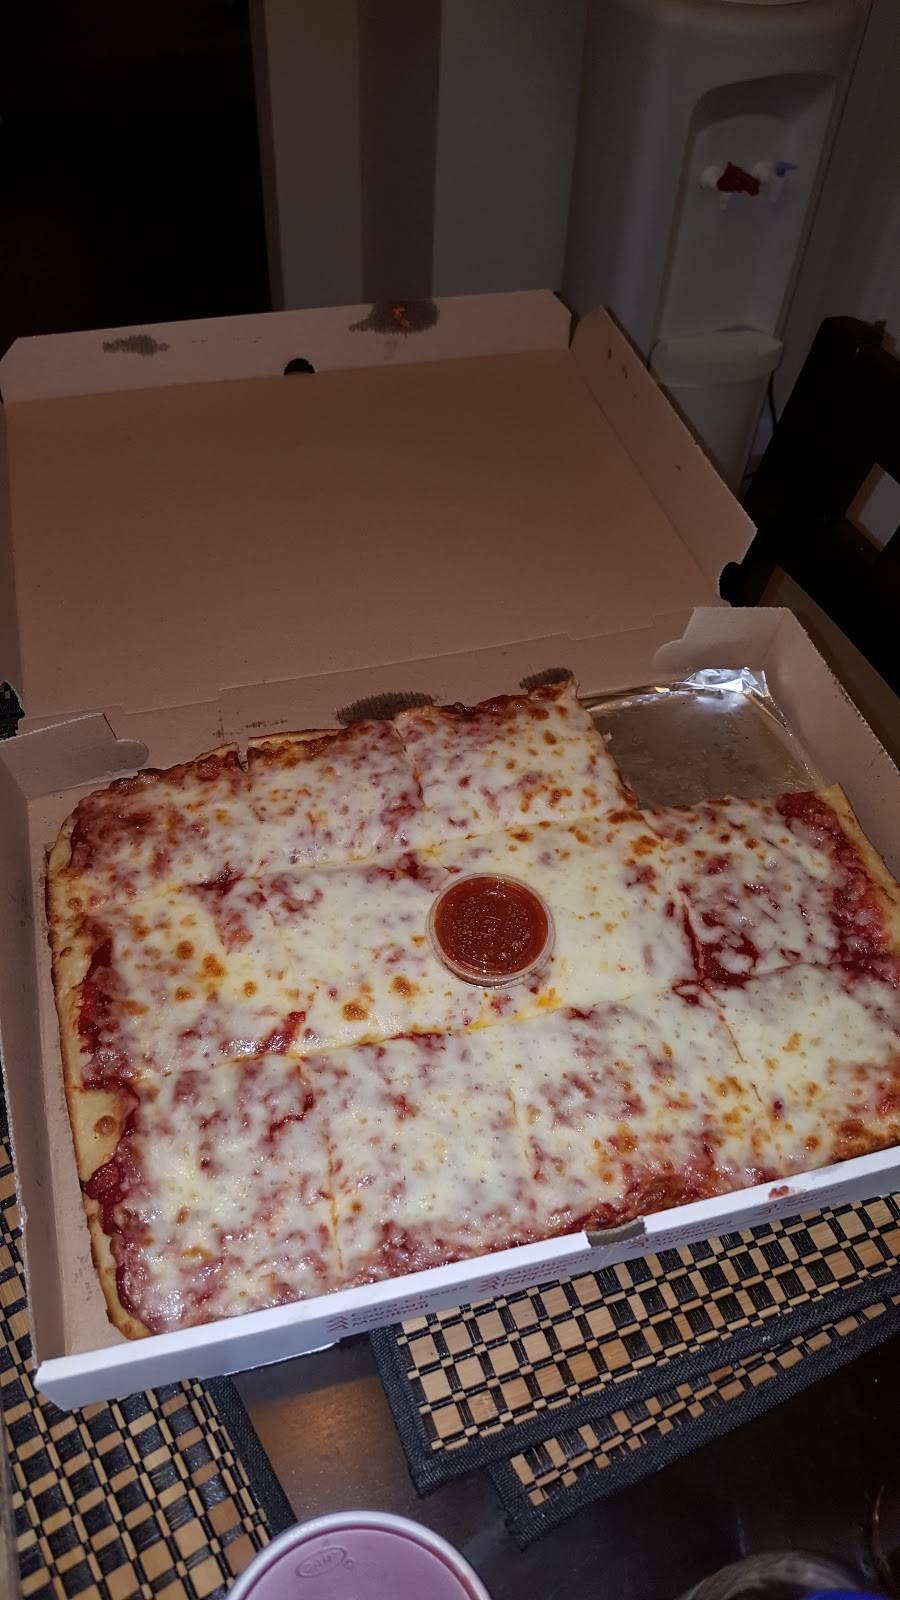 Rocky's Sweet Pizzz Pizza | meal delivery | 232 S Lehigh Ave, Frackville, PA 17931, USA | 5708741112 OR +1 570-874-1112